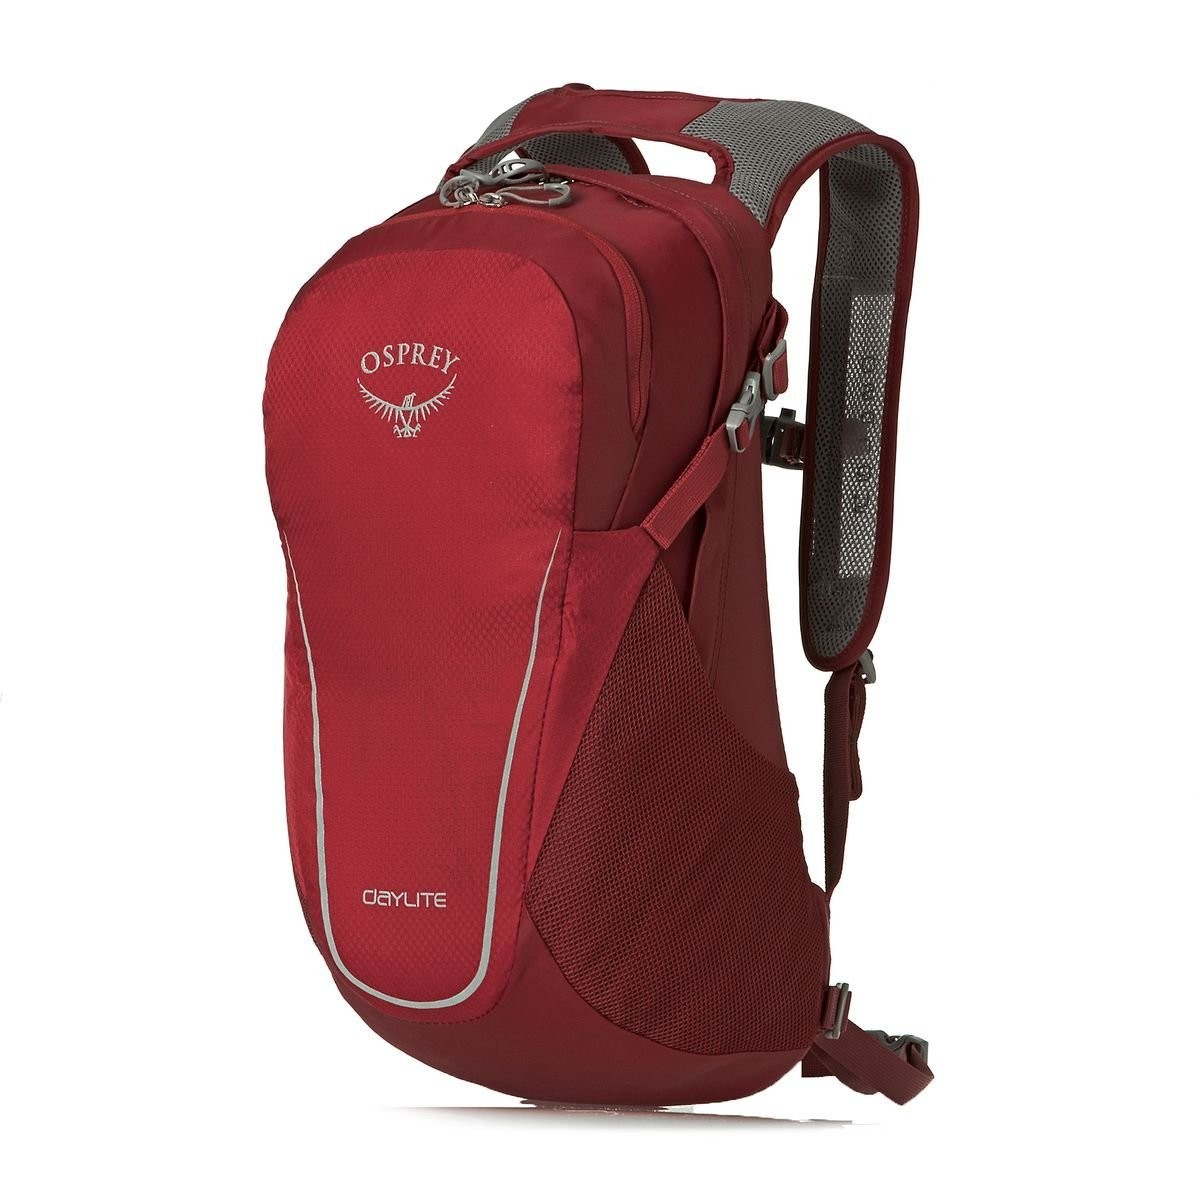 Osprey DAYLITE DETACHABLE DAYPACK W/ FREE S\u0026H  REAL RED